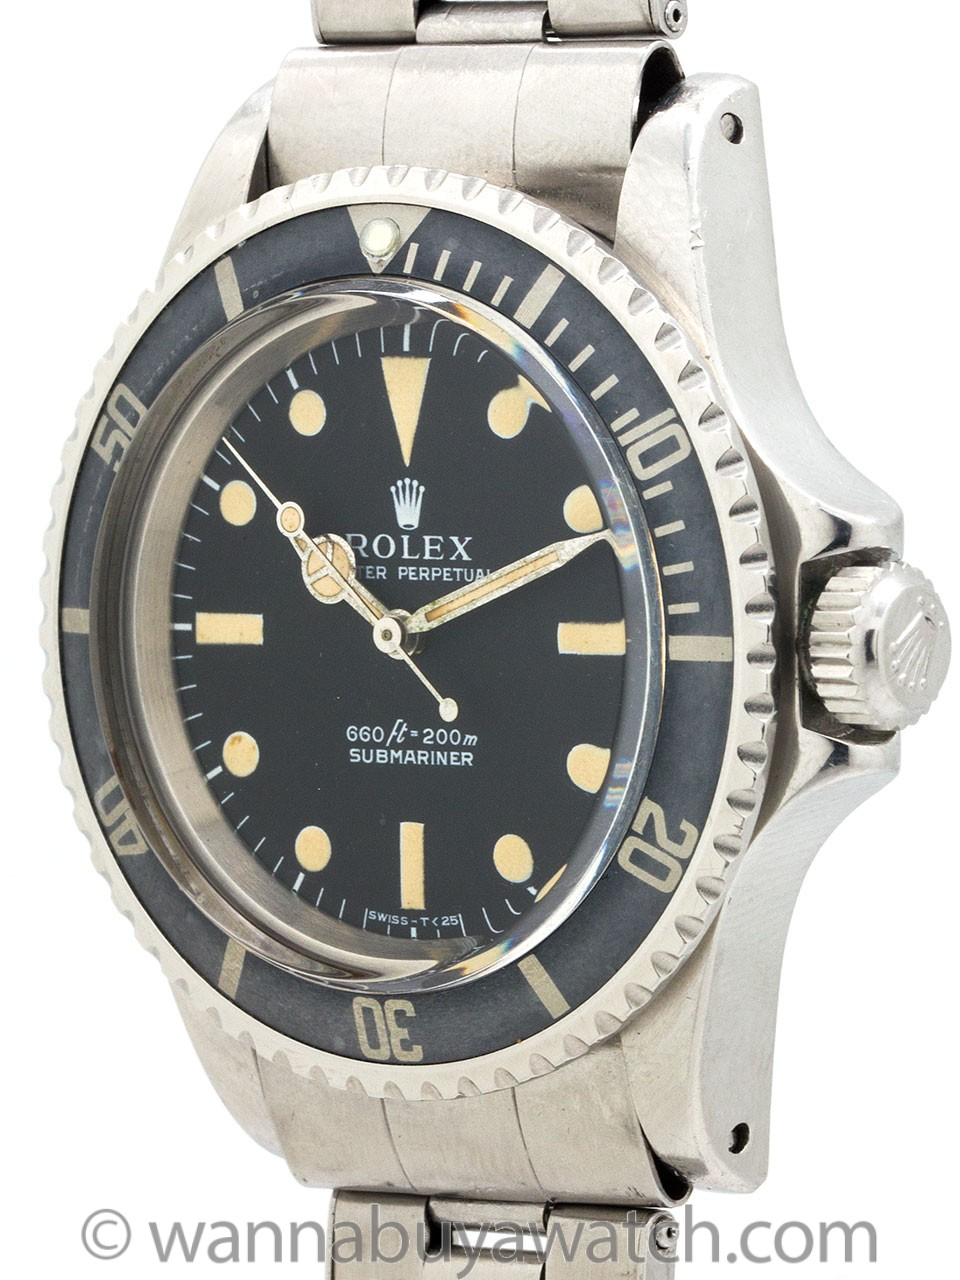 Rolex Submariner ref 5513 Stainless Steel circa 1974